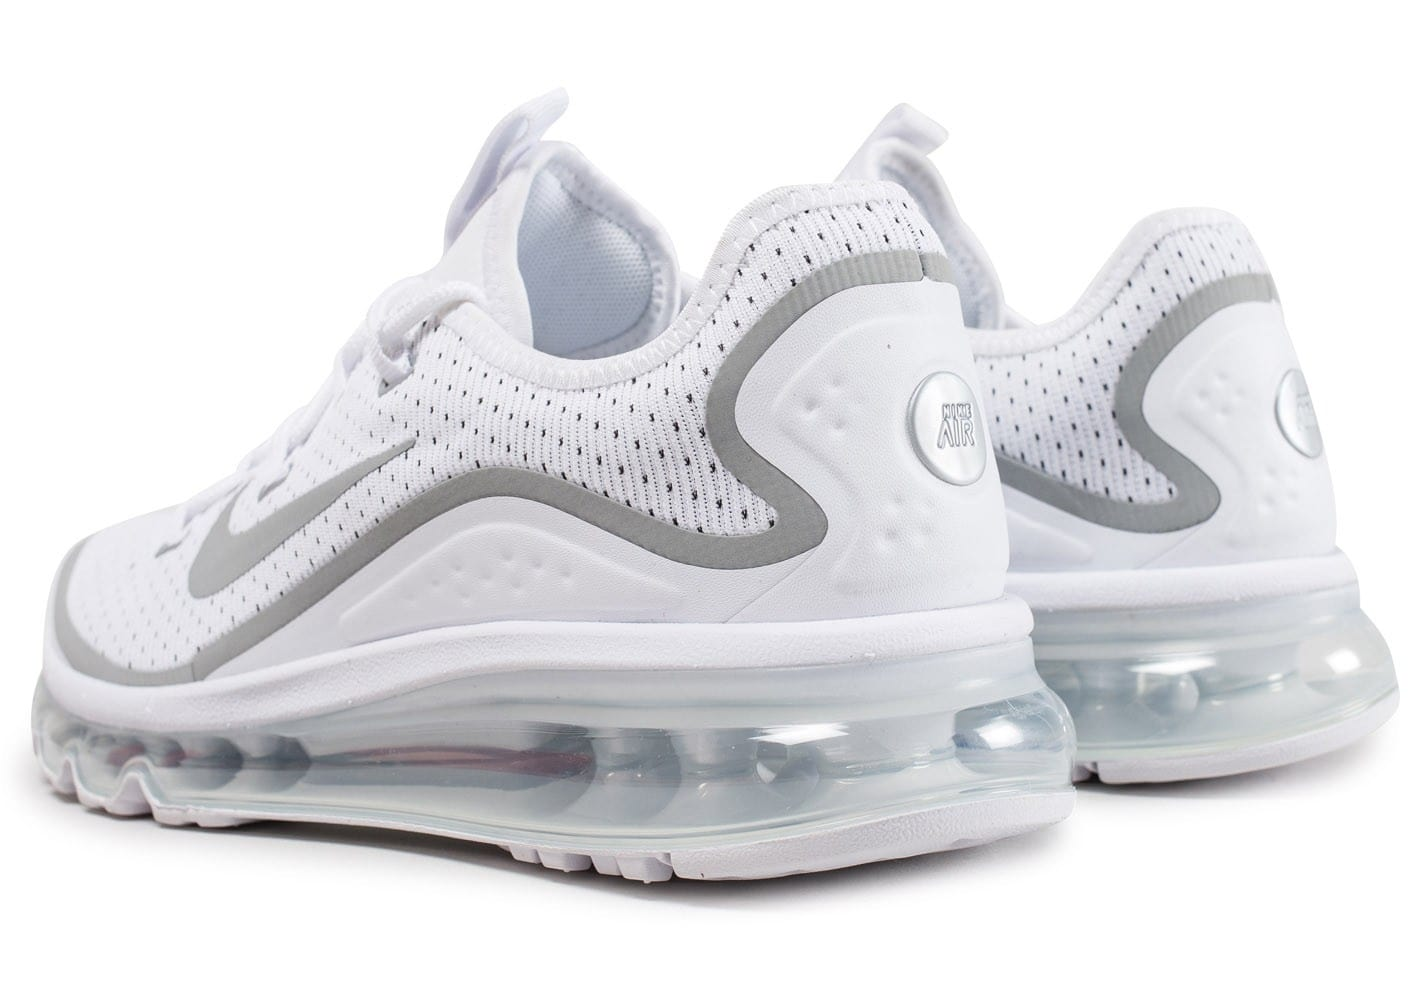 Basket air max more blanche homme site fiable 28955